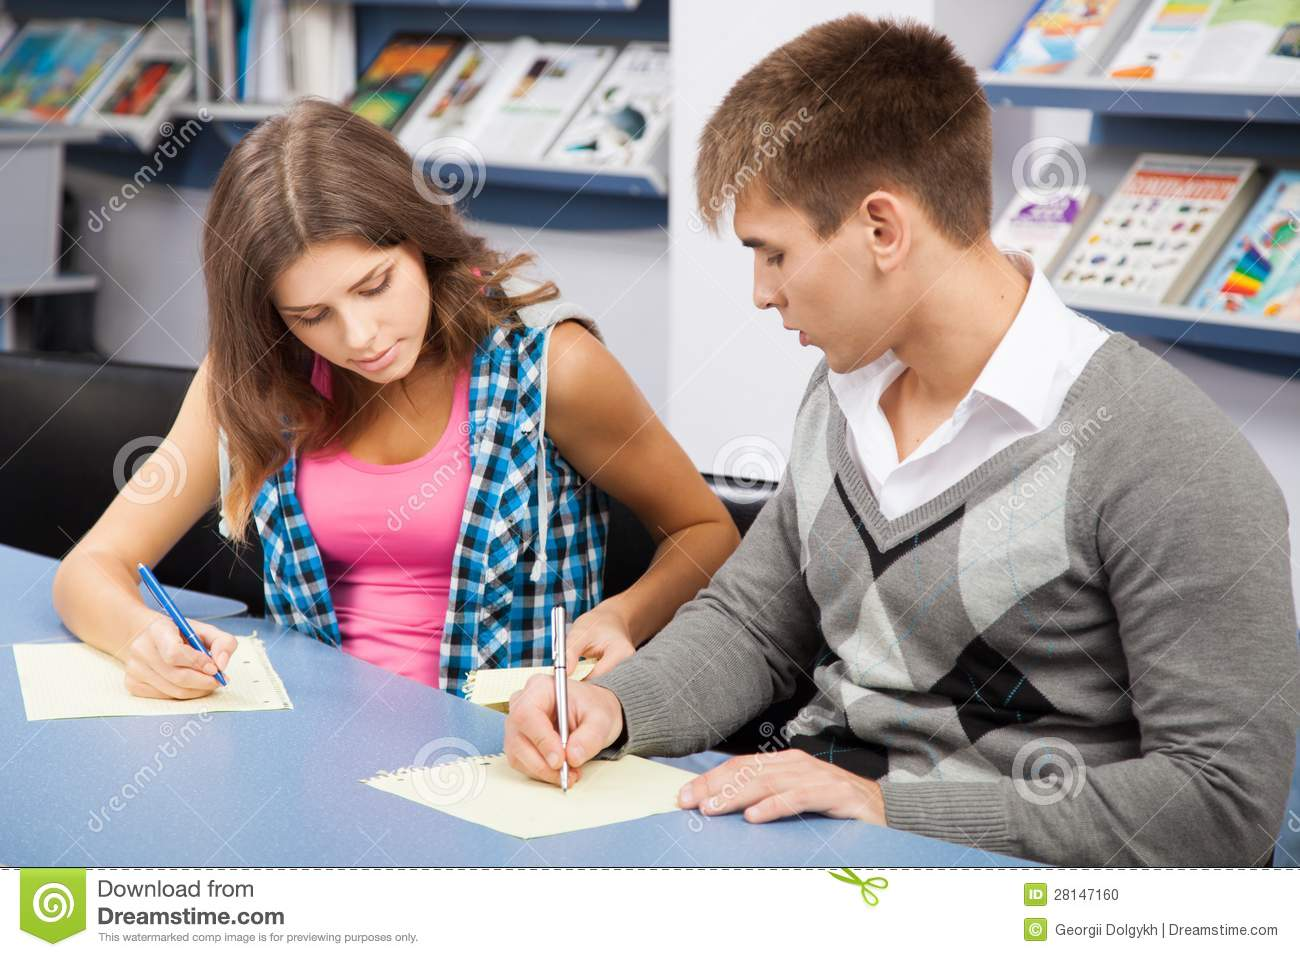 college students cheating on exams 7 college cheating scandals from ethan just look at these epic college cheating scandals 1 mba students network the school in 2007 when second-year dental students figured out a way to hack into the computer system that held their exams once inside, students could study the x-rays.